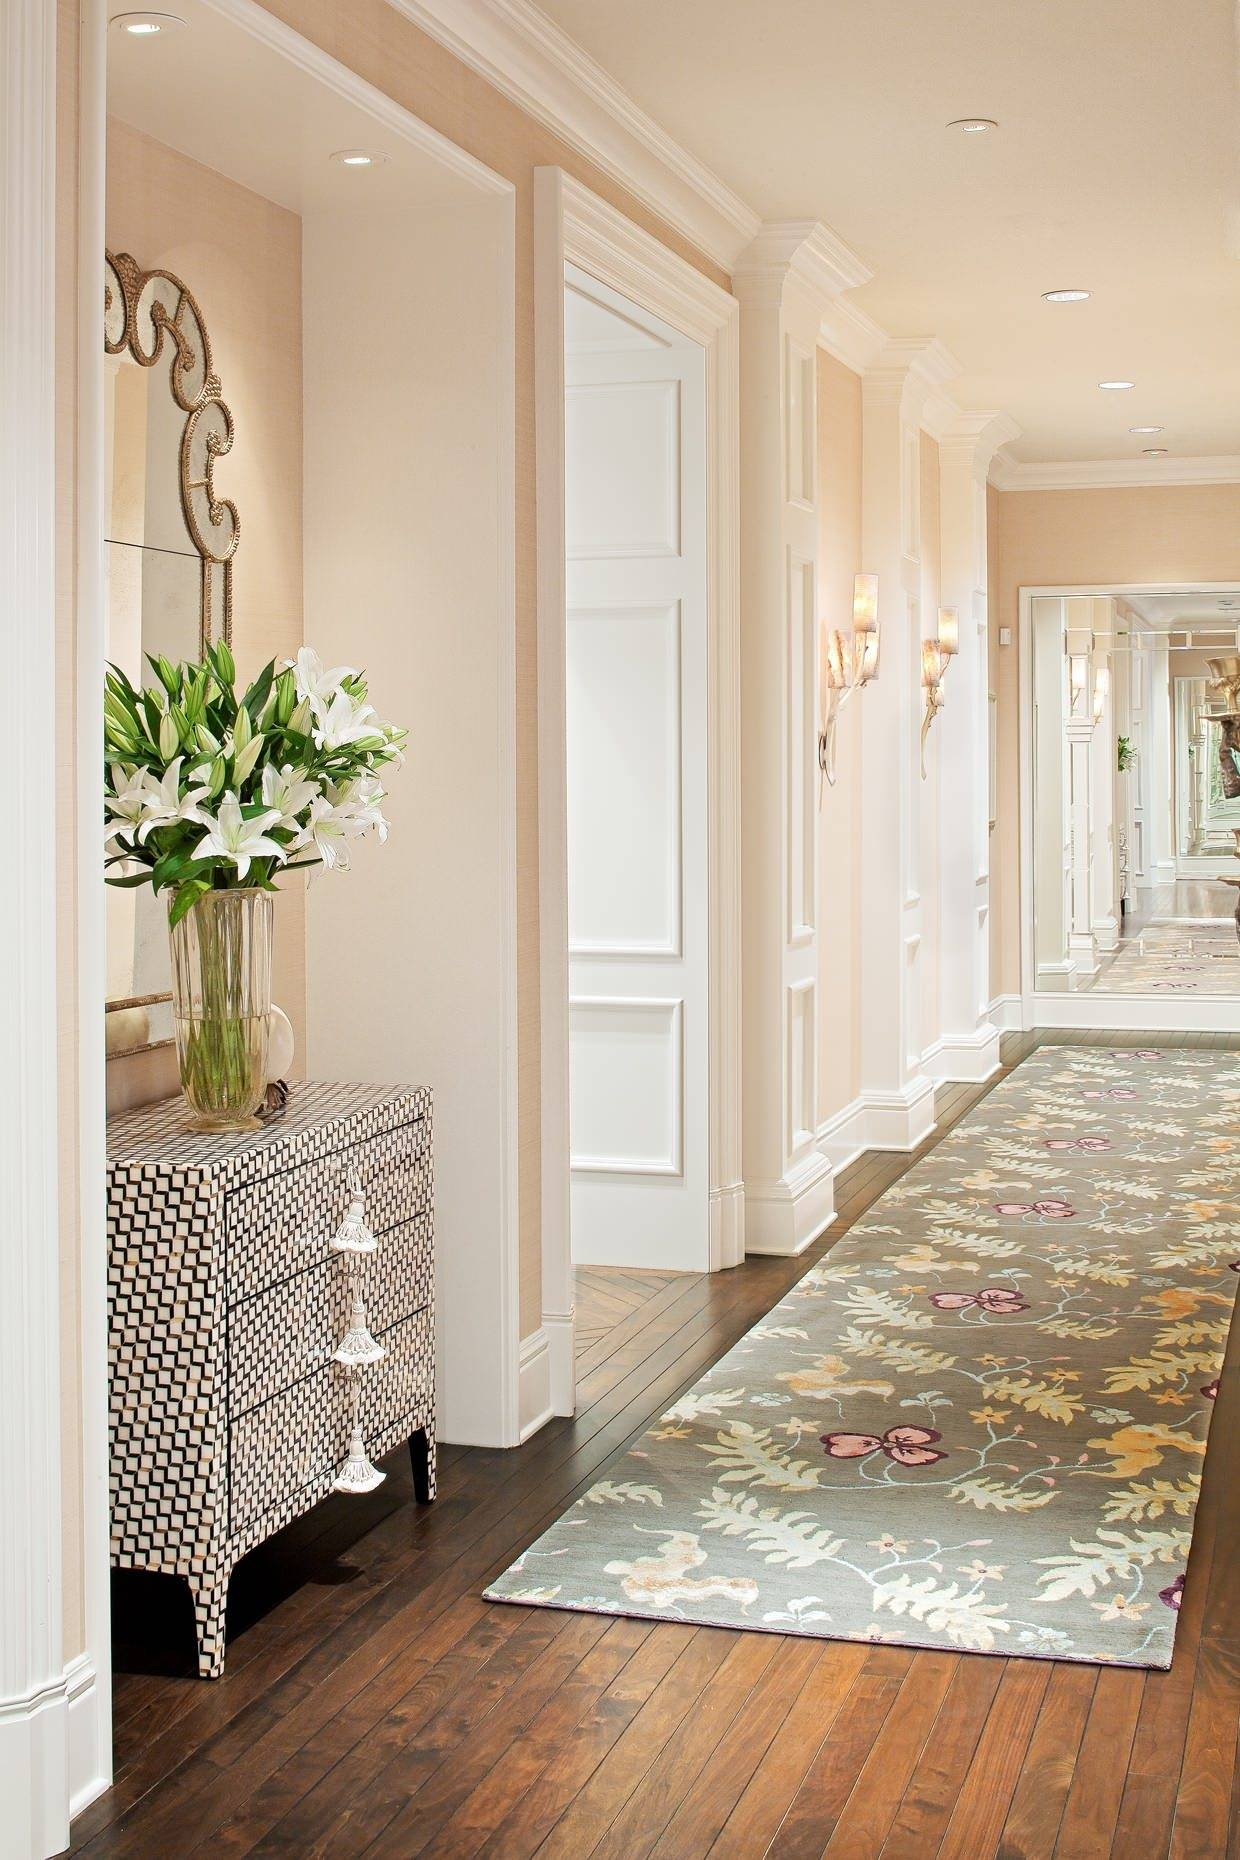 5 Ways To Decorate A Narrow Hallway - Shoproomideas with Long Mirrors for Hallway (Image 1 of 15)